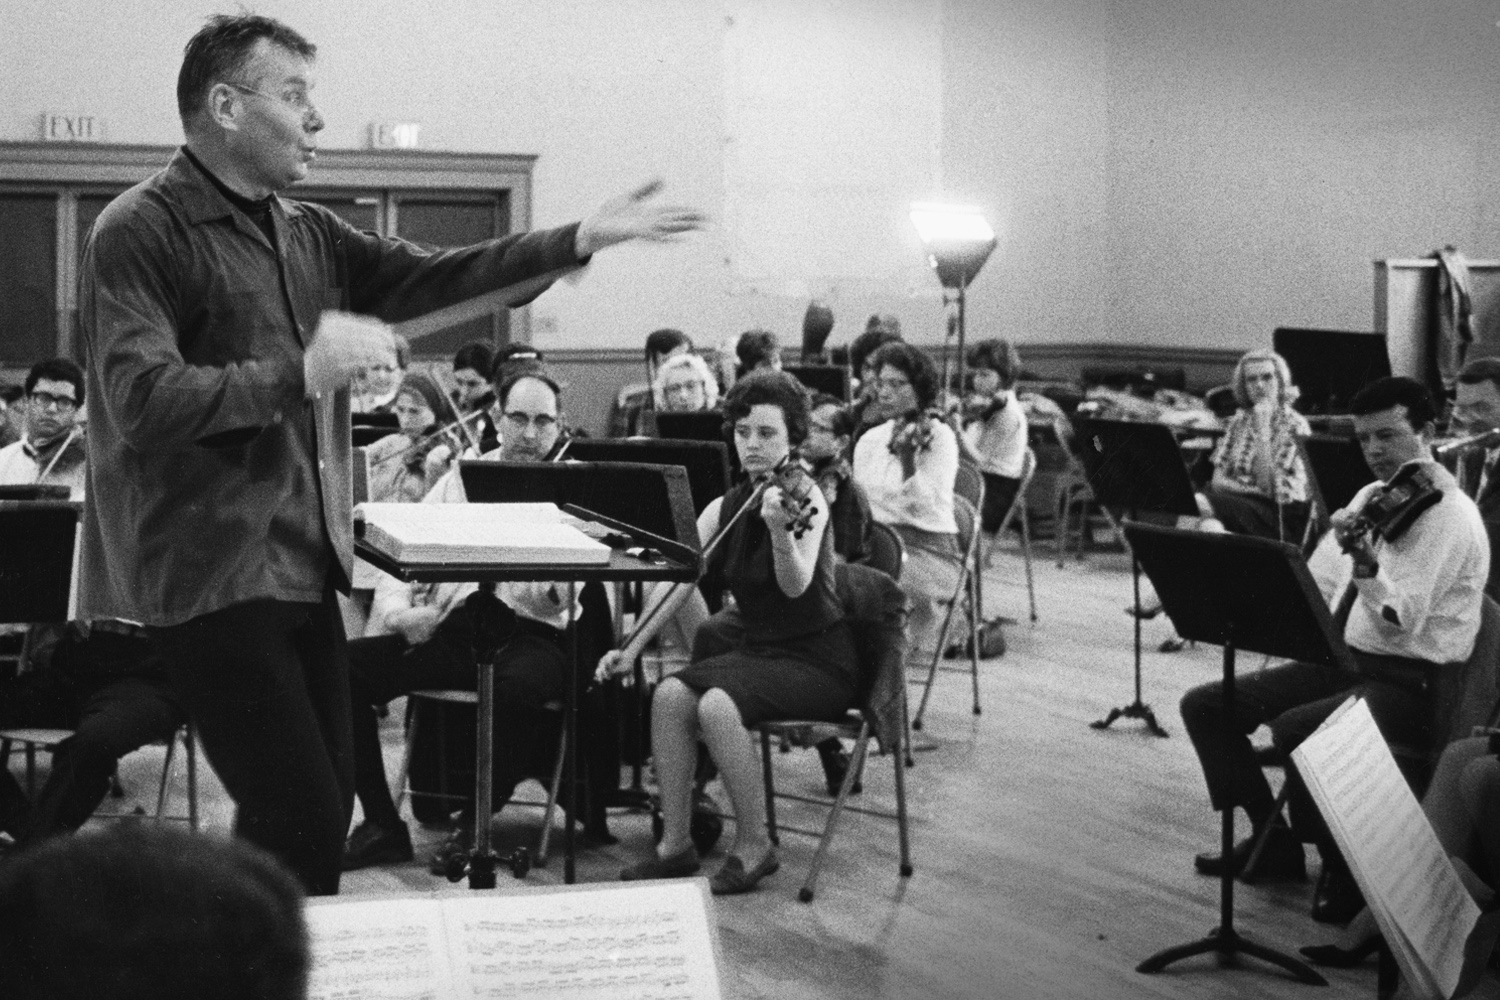 Robert Shaw's first rehearsal with Atlanta Symphony Orchestra musicians in an unused Atlanta school building on 10th Street, 1967.